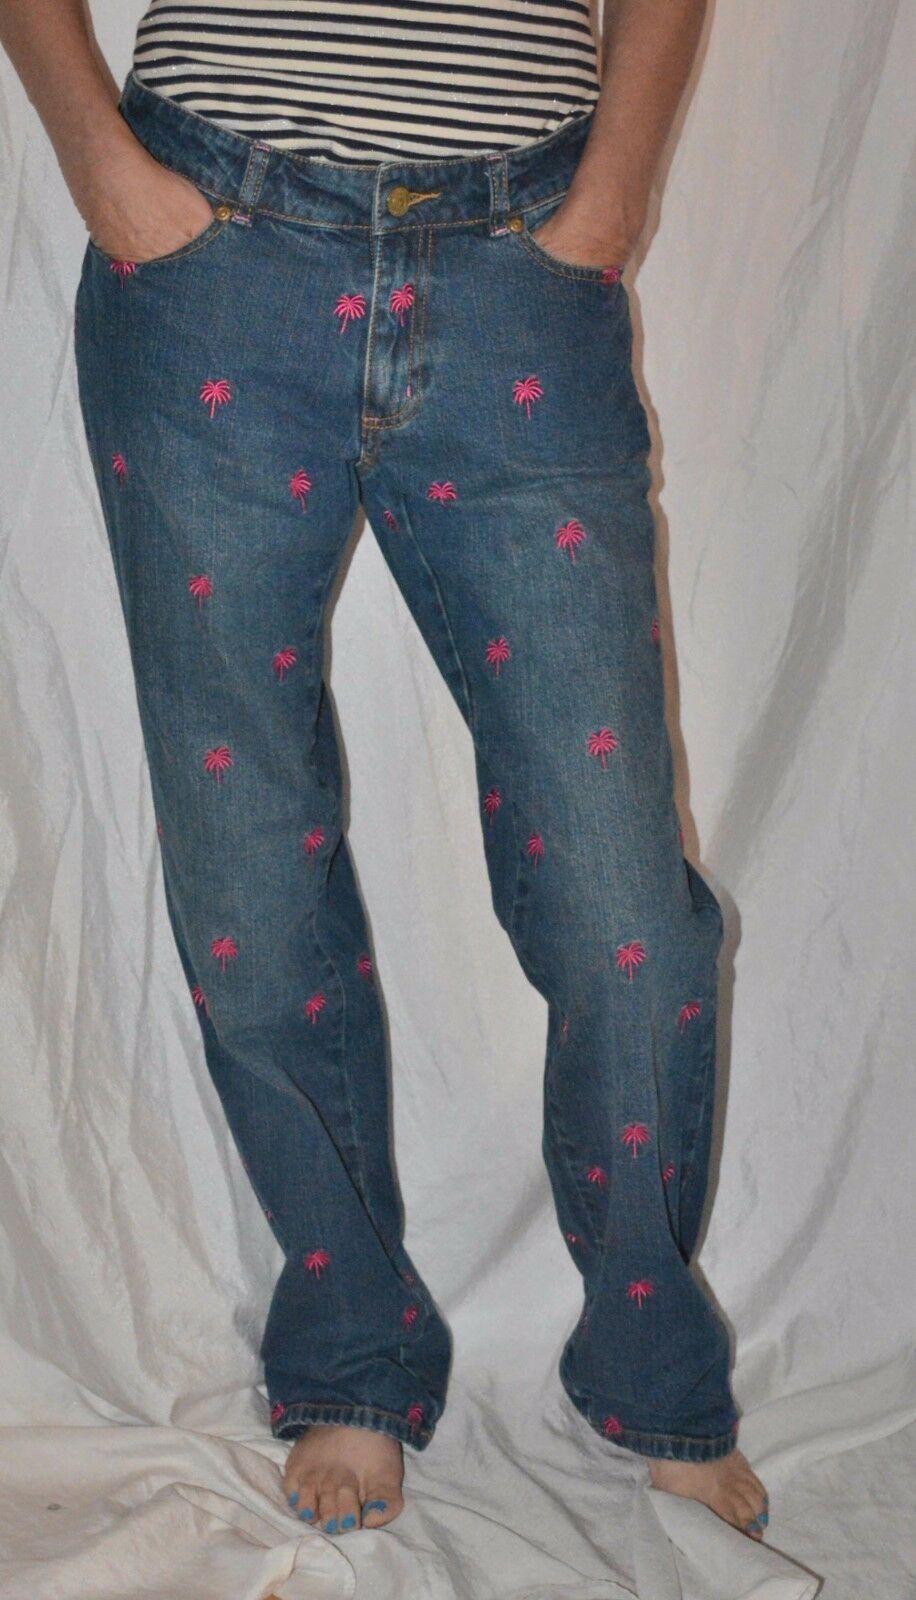 Lilly Pulitzer jeans Embroidered Palm Trees Size 4  GREAT fit